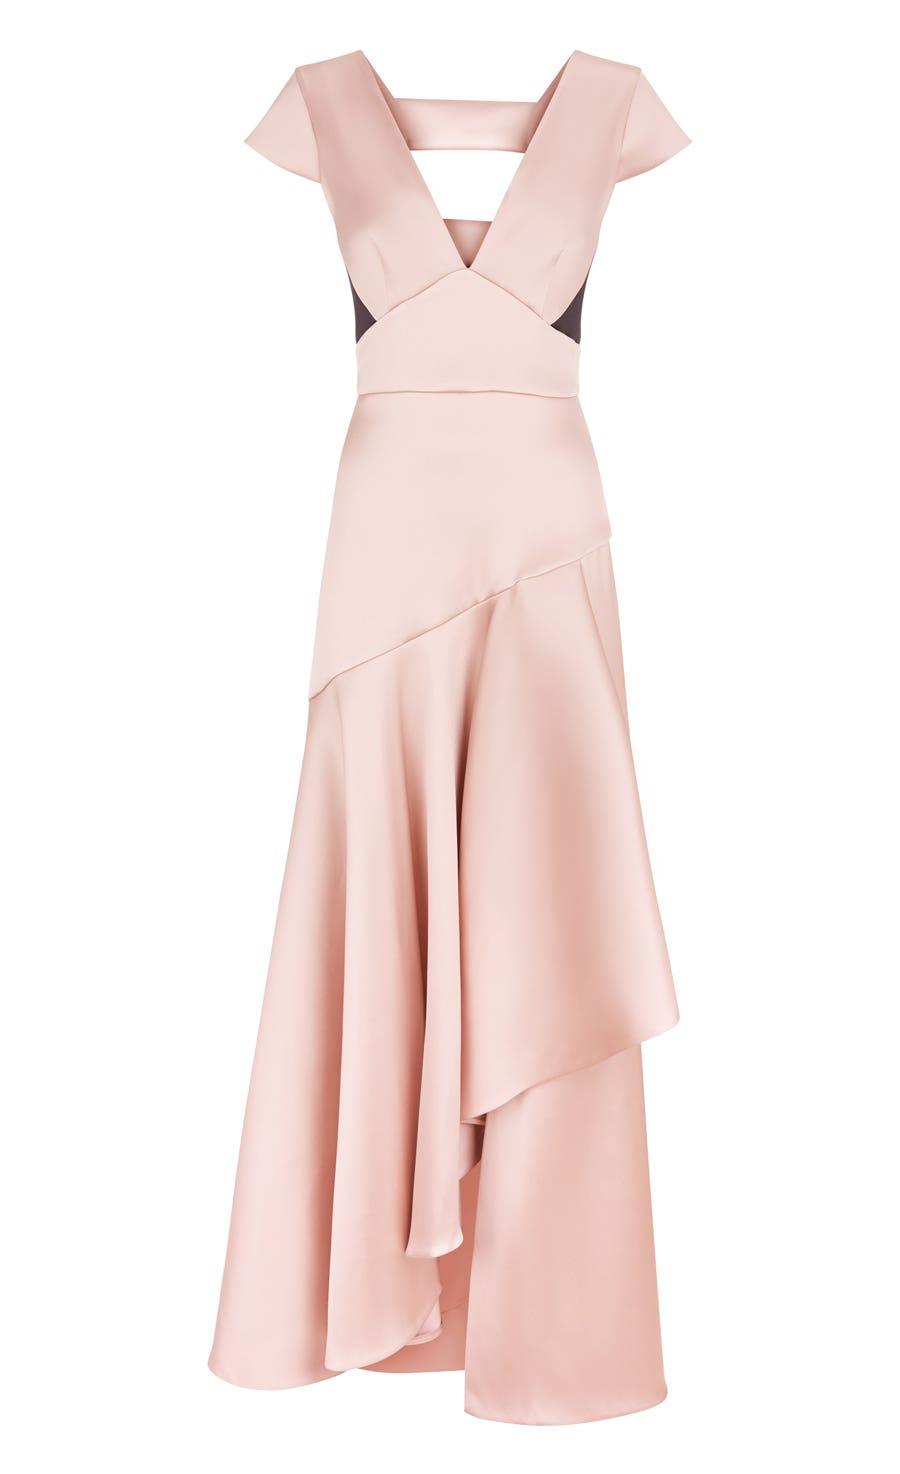 Shield Draped Dress, Blush